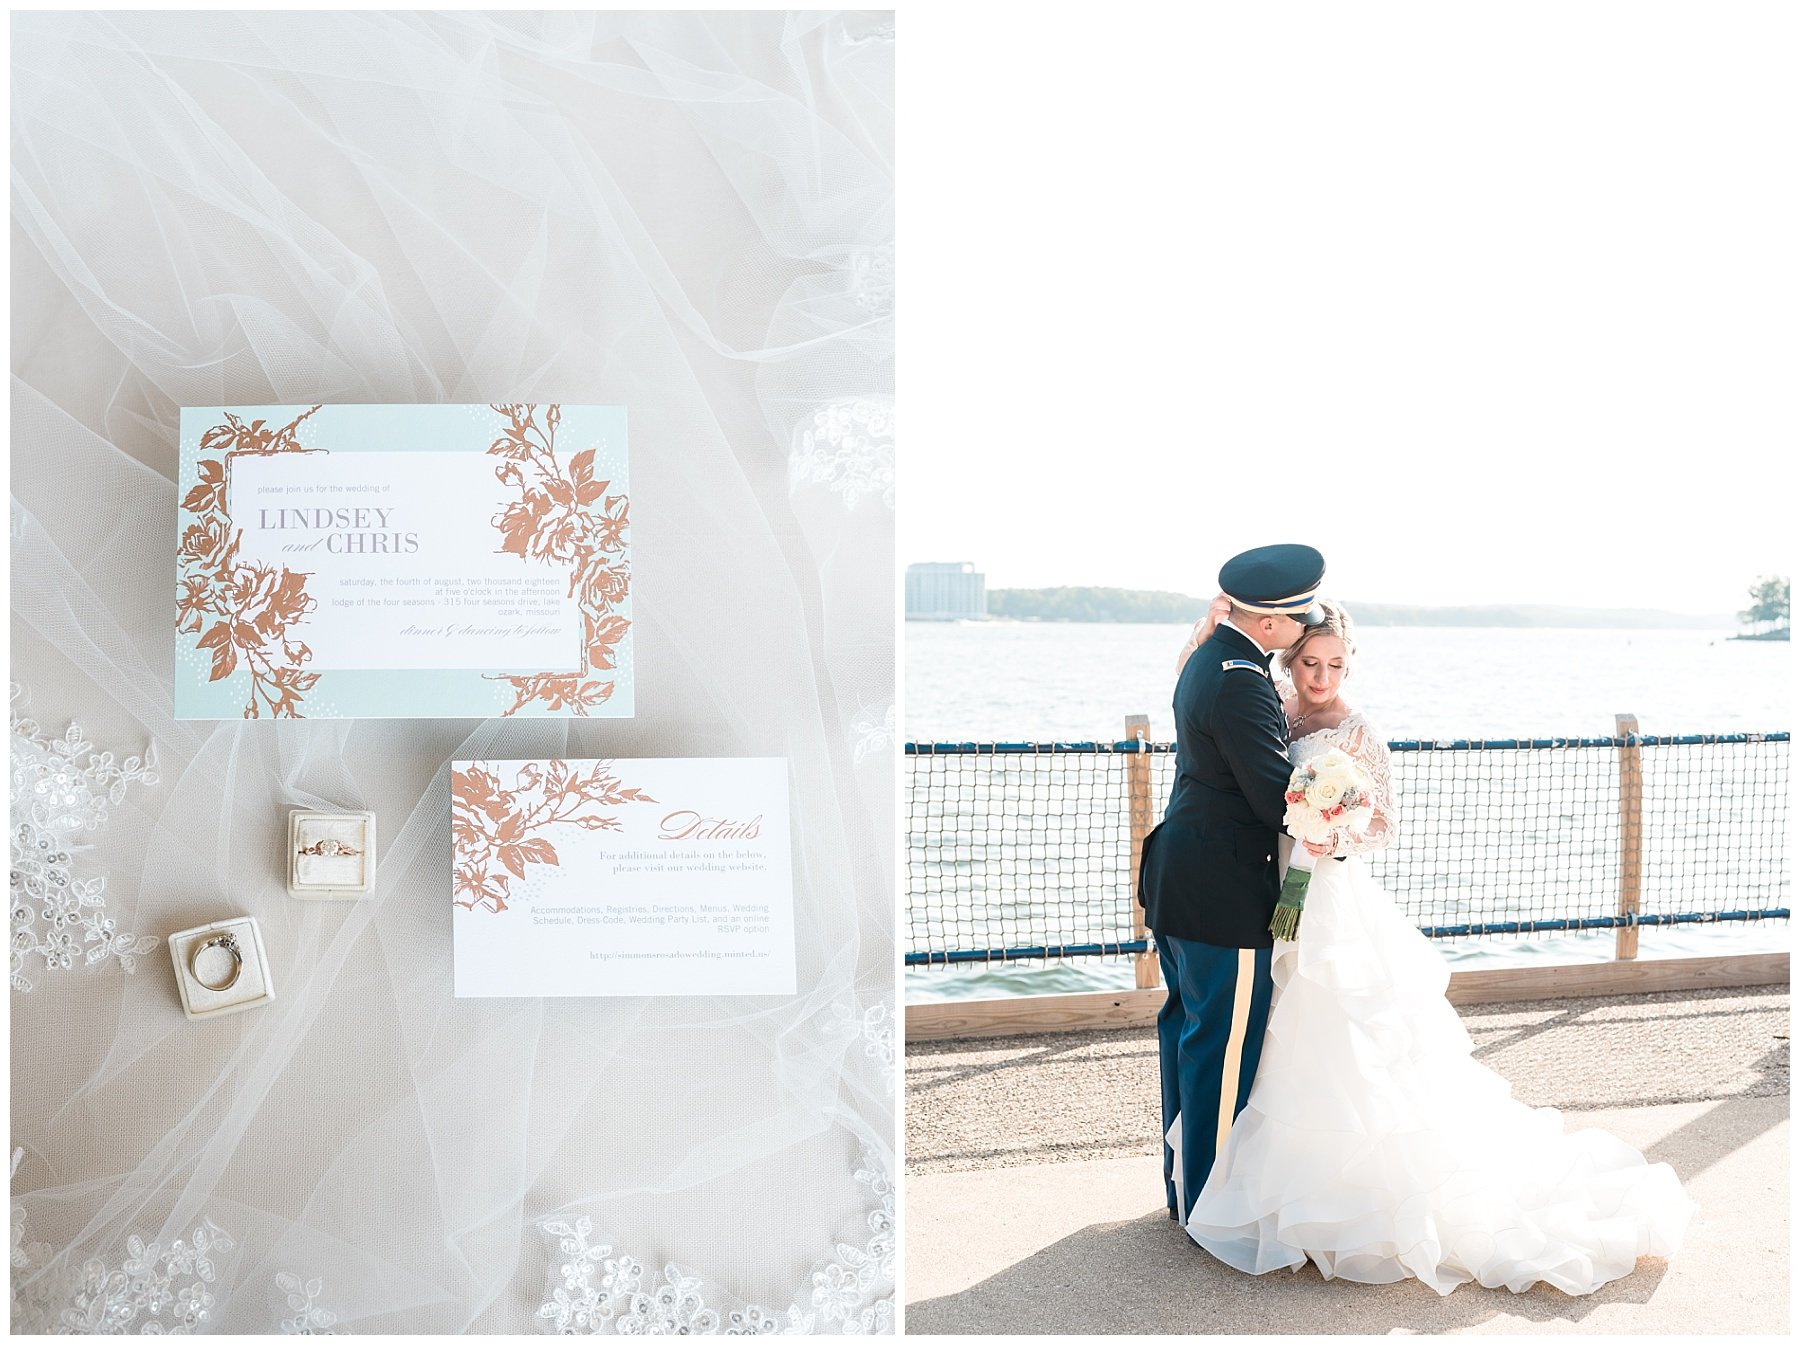 Beachside Sunset Wedding At Lodge Of Four Seasons At Lake Of The Ozarks By Kelsi Kliethermes Photography_0011.jpg